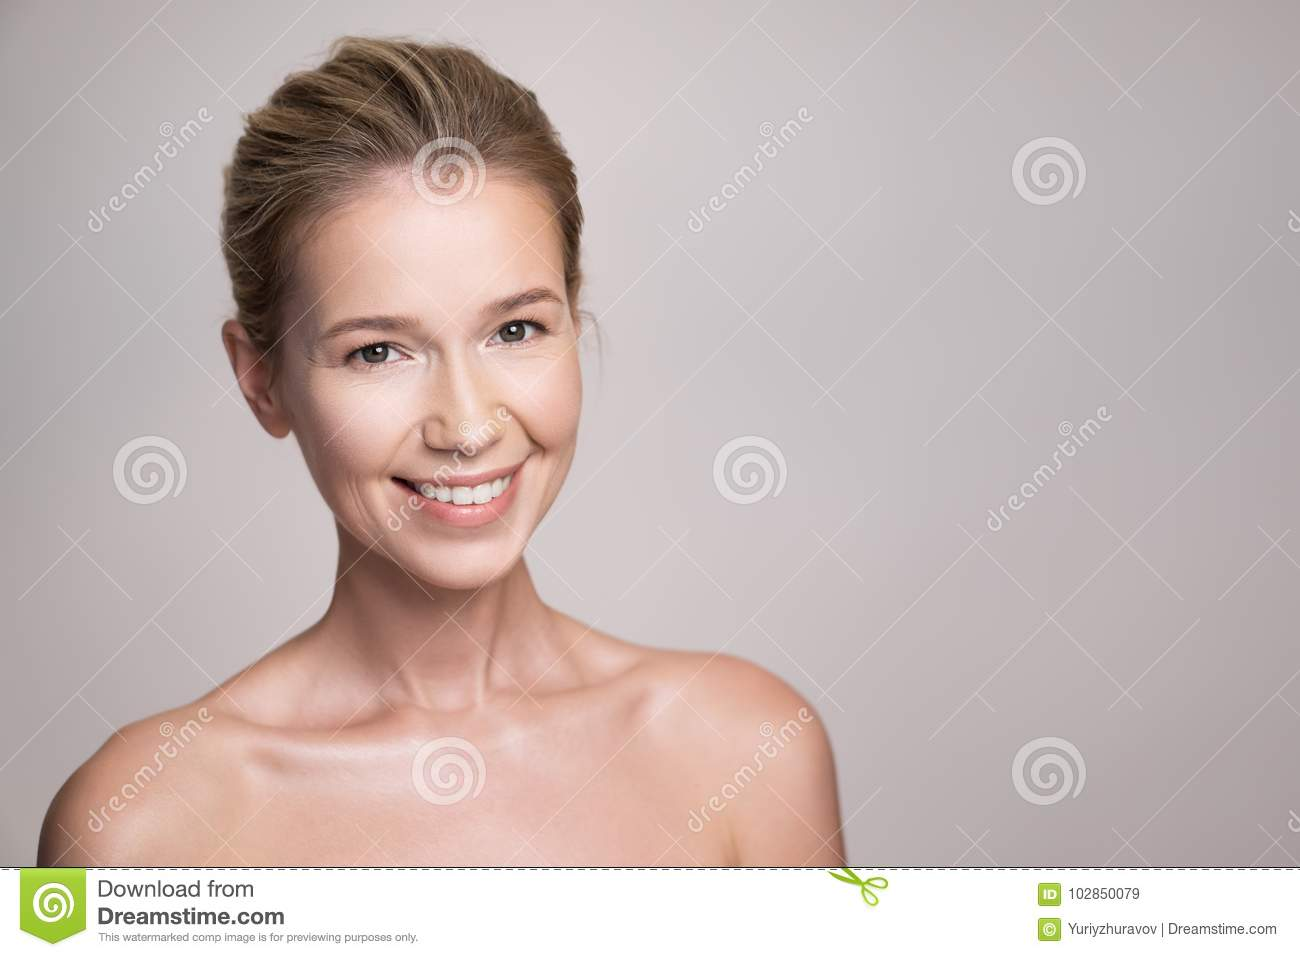 Beauty portrait of attractive middle age blonde woman